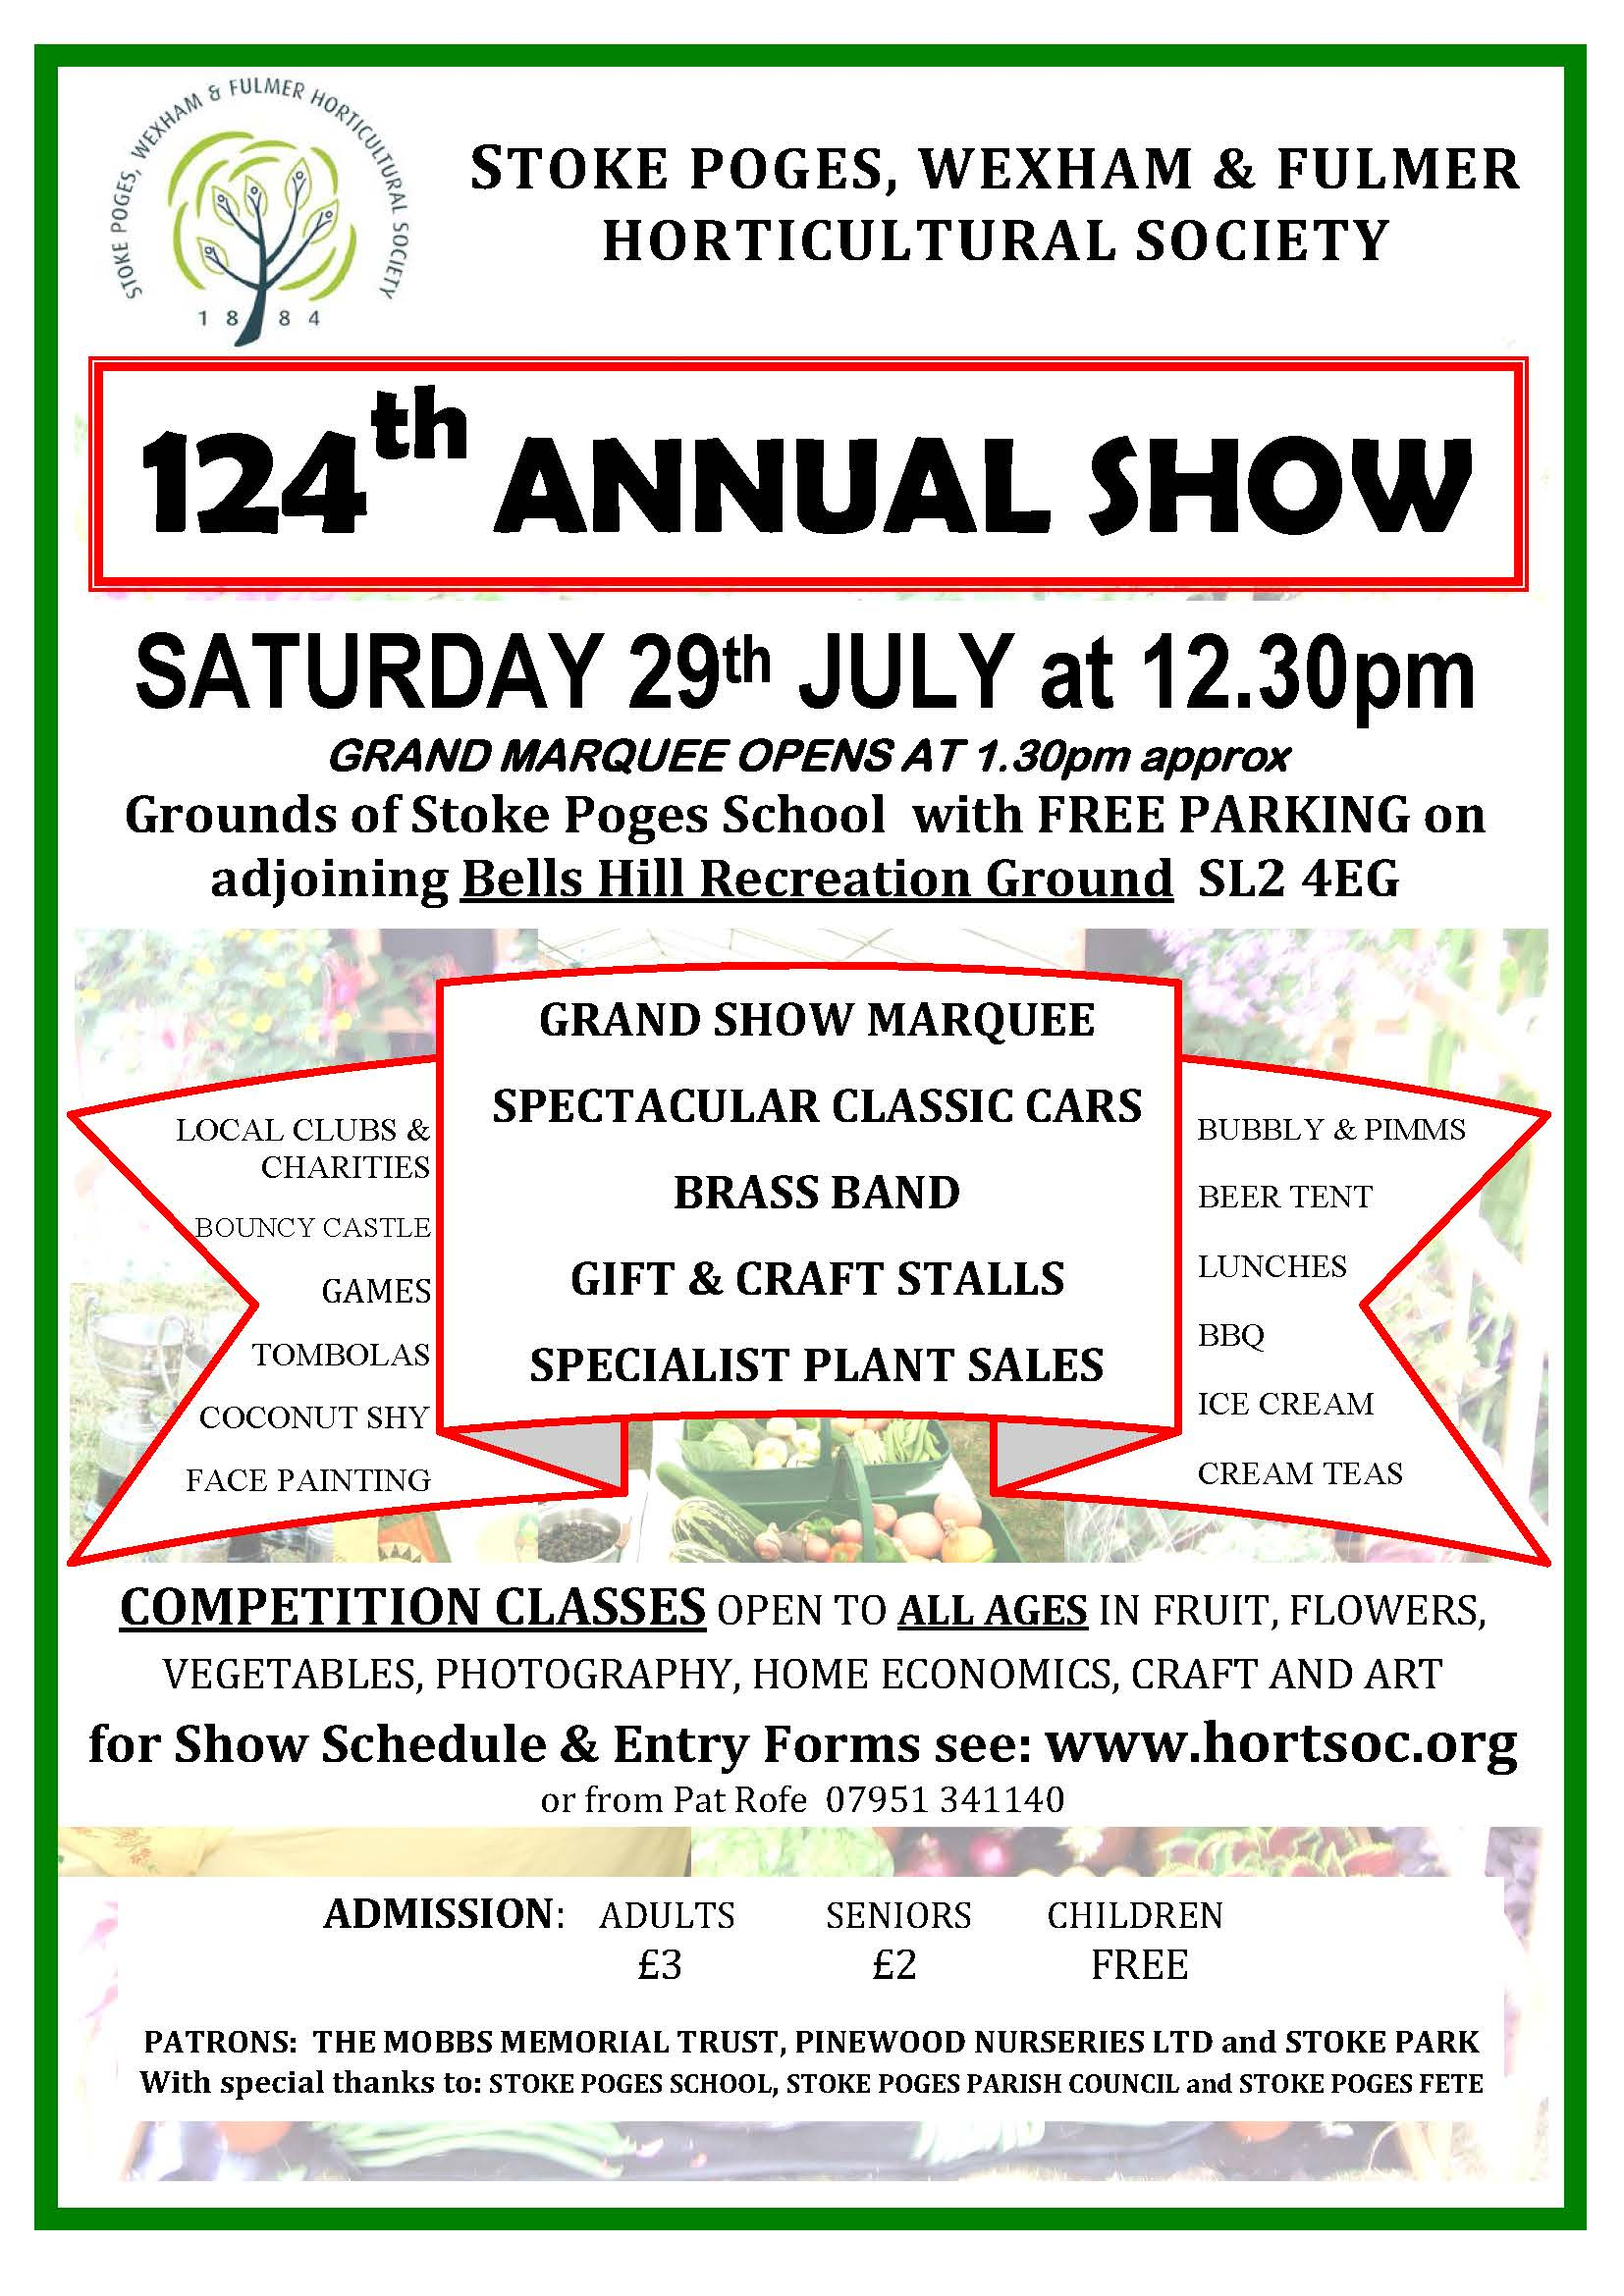 124th Annual Show, Stoke Poges, Wexham and Fulmer Horticultural Society